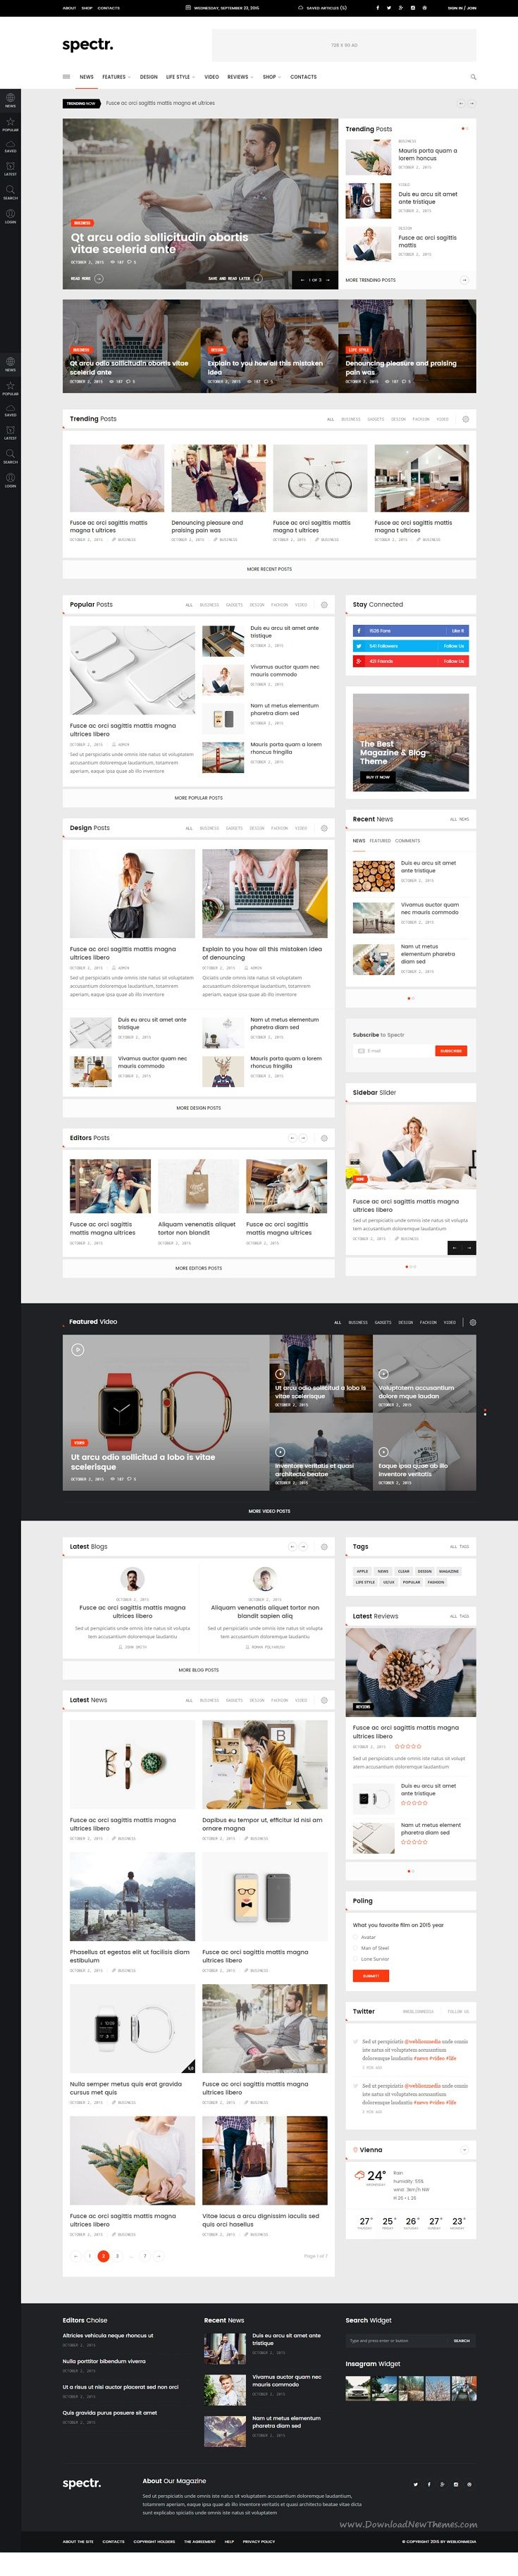 Spectr responsive news and magazine template